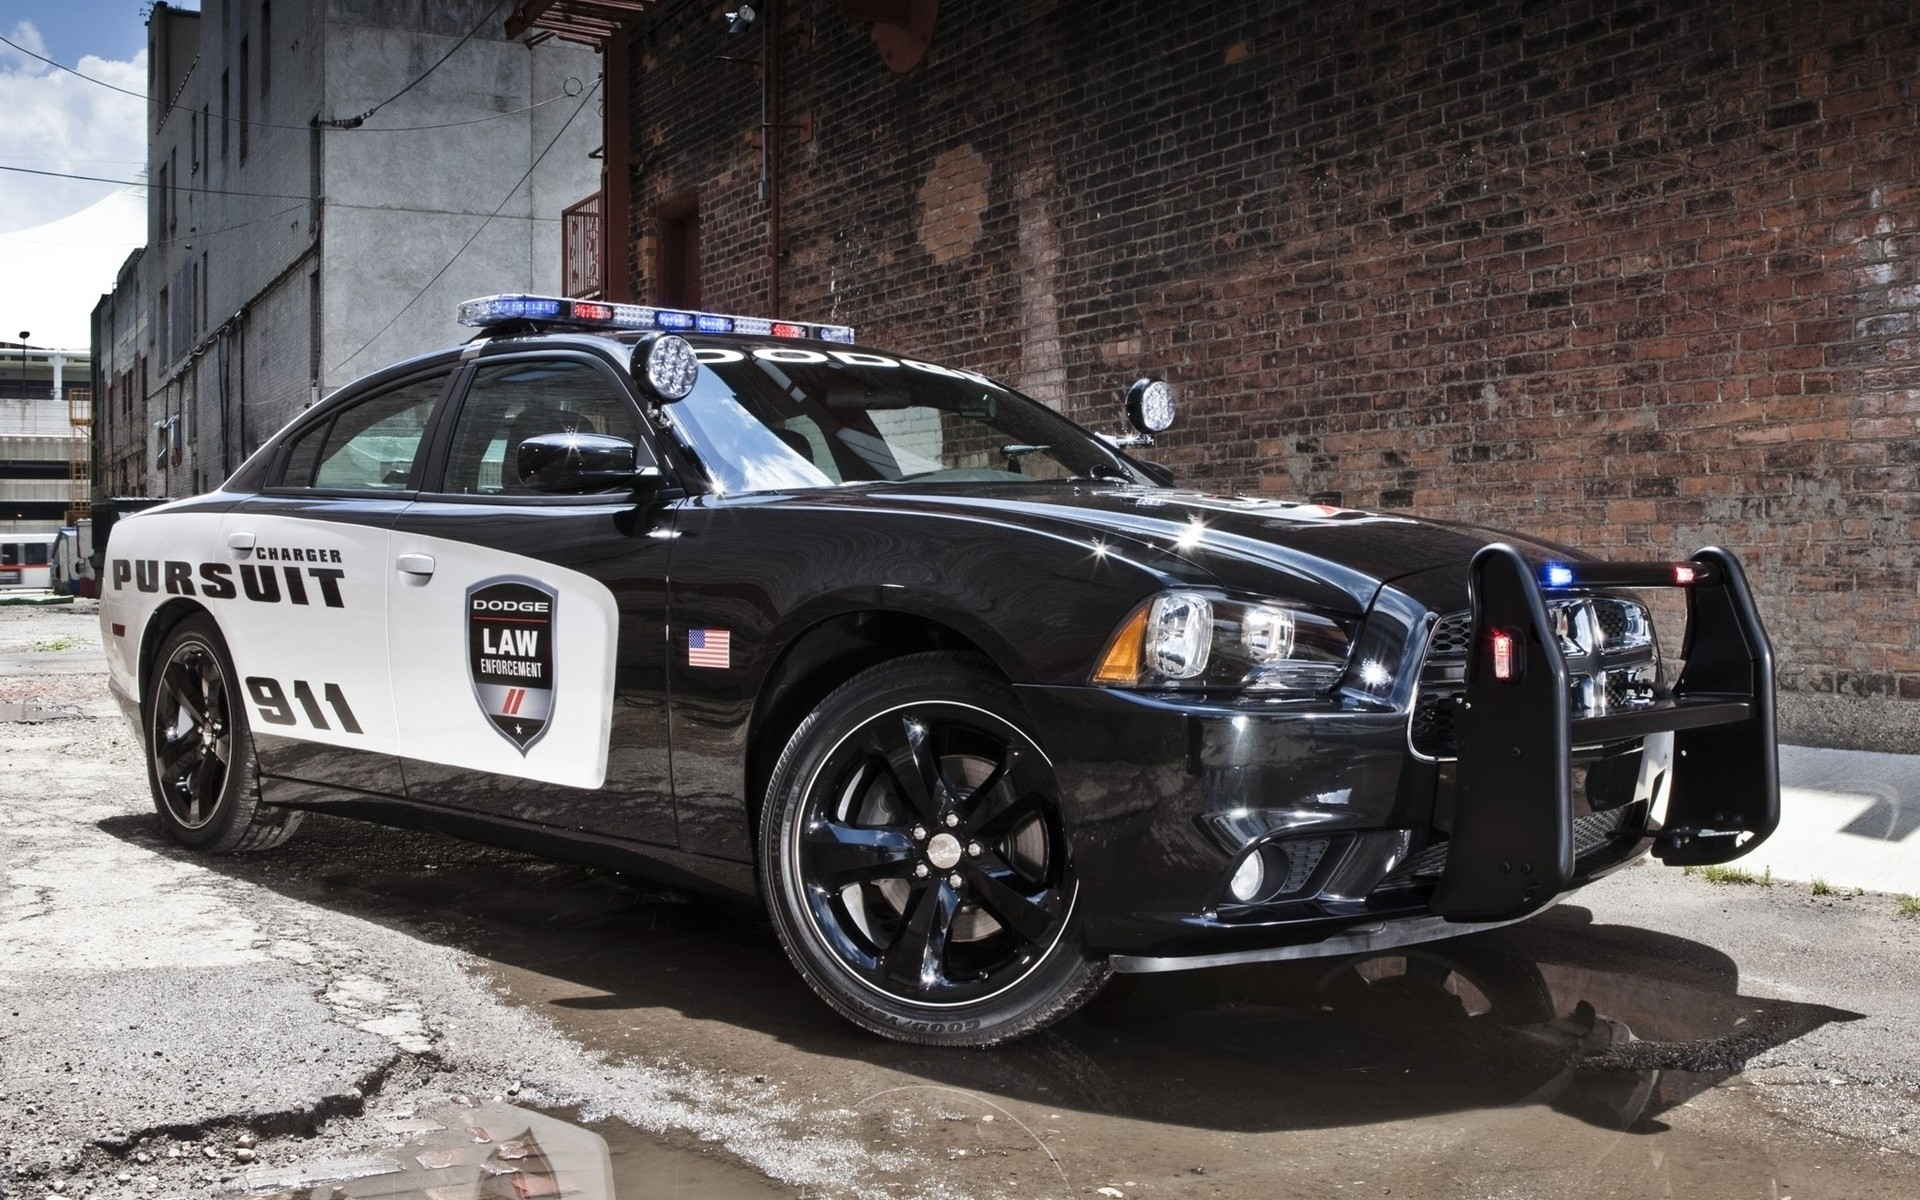 Wallpaper police, car, cool desktop | HD Desktop Wallpapers